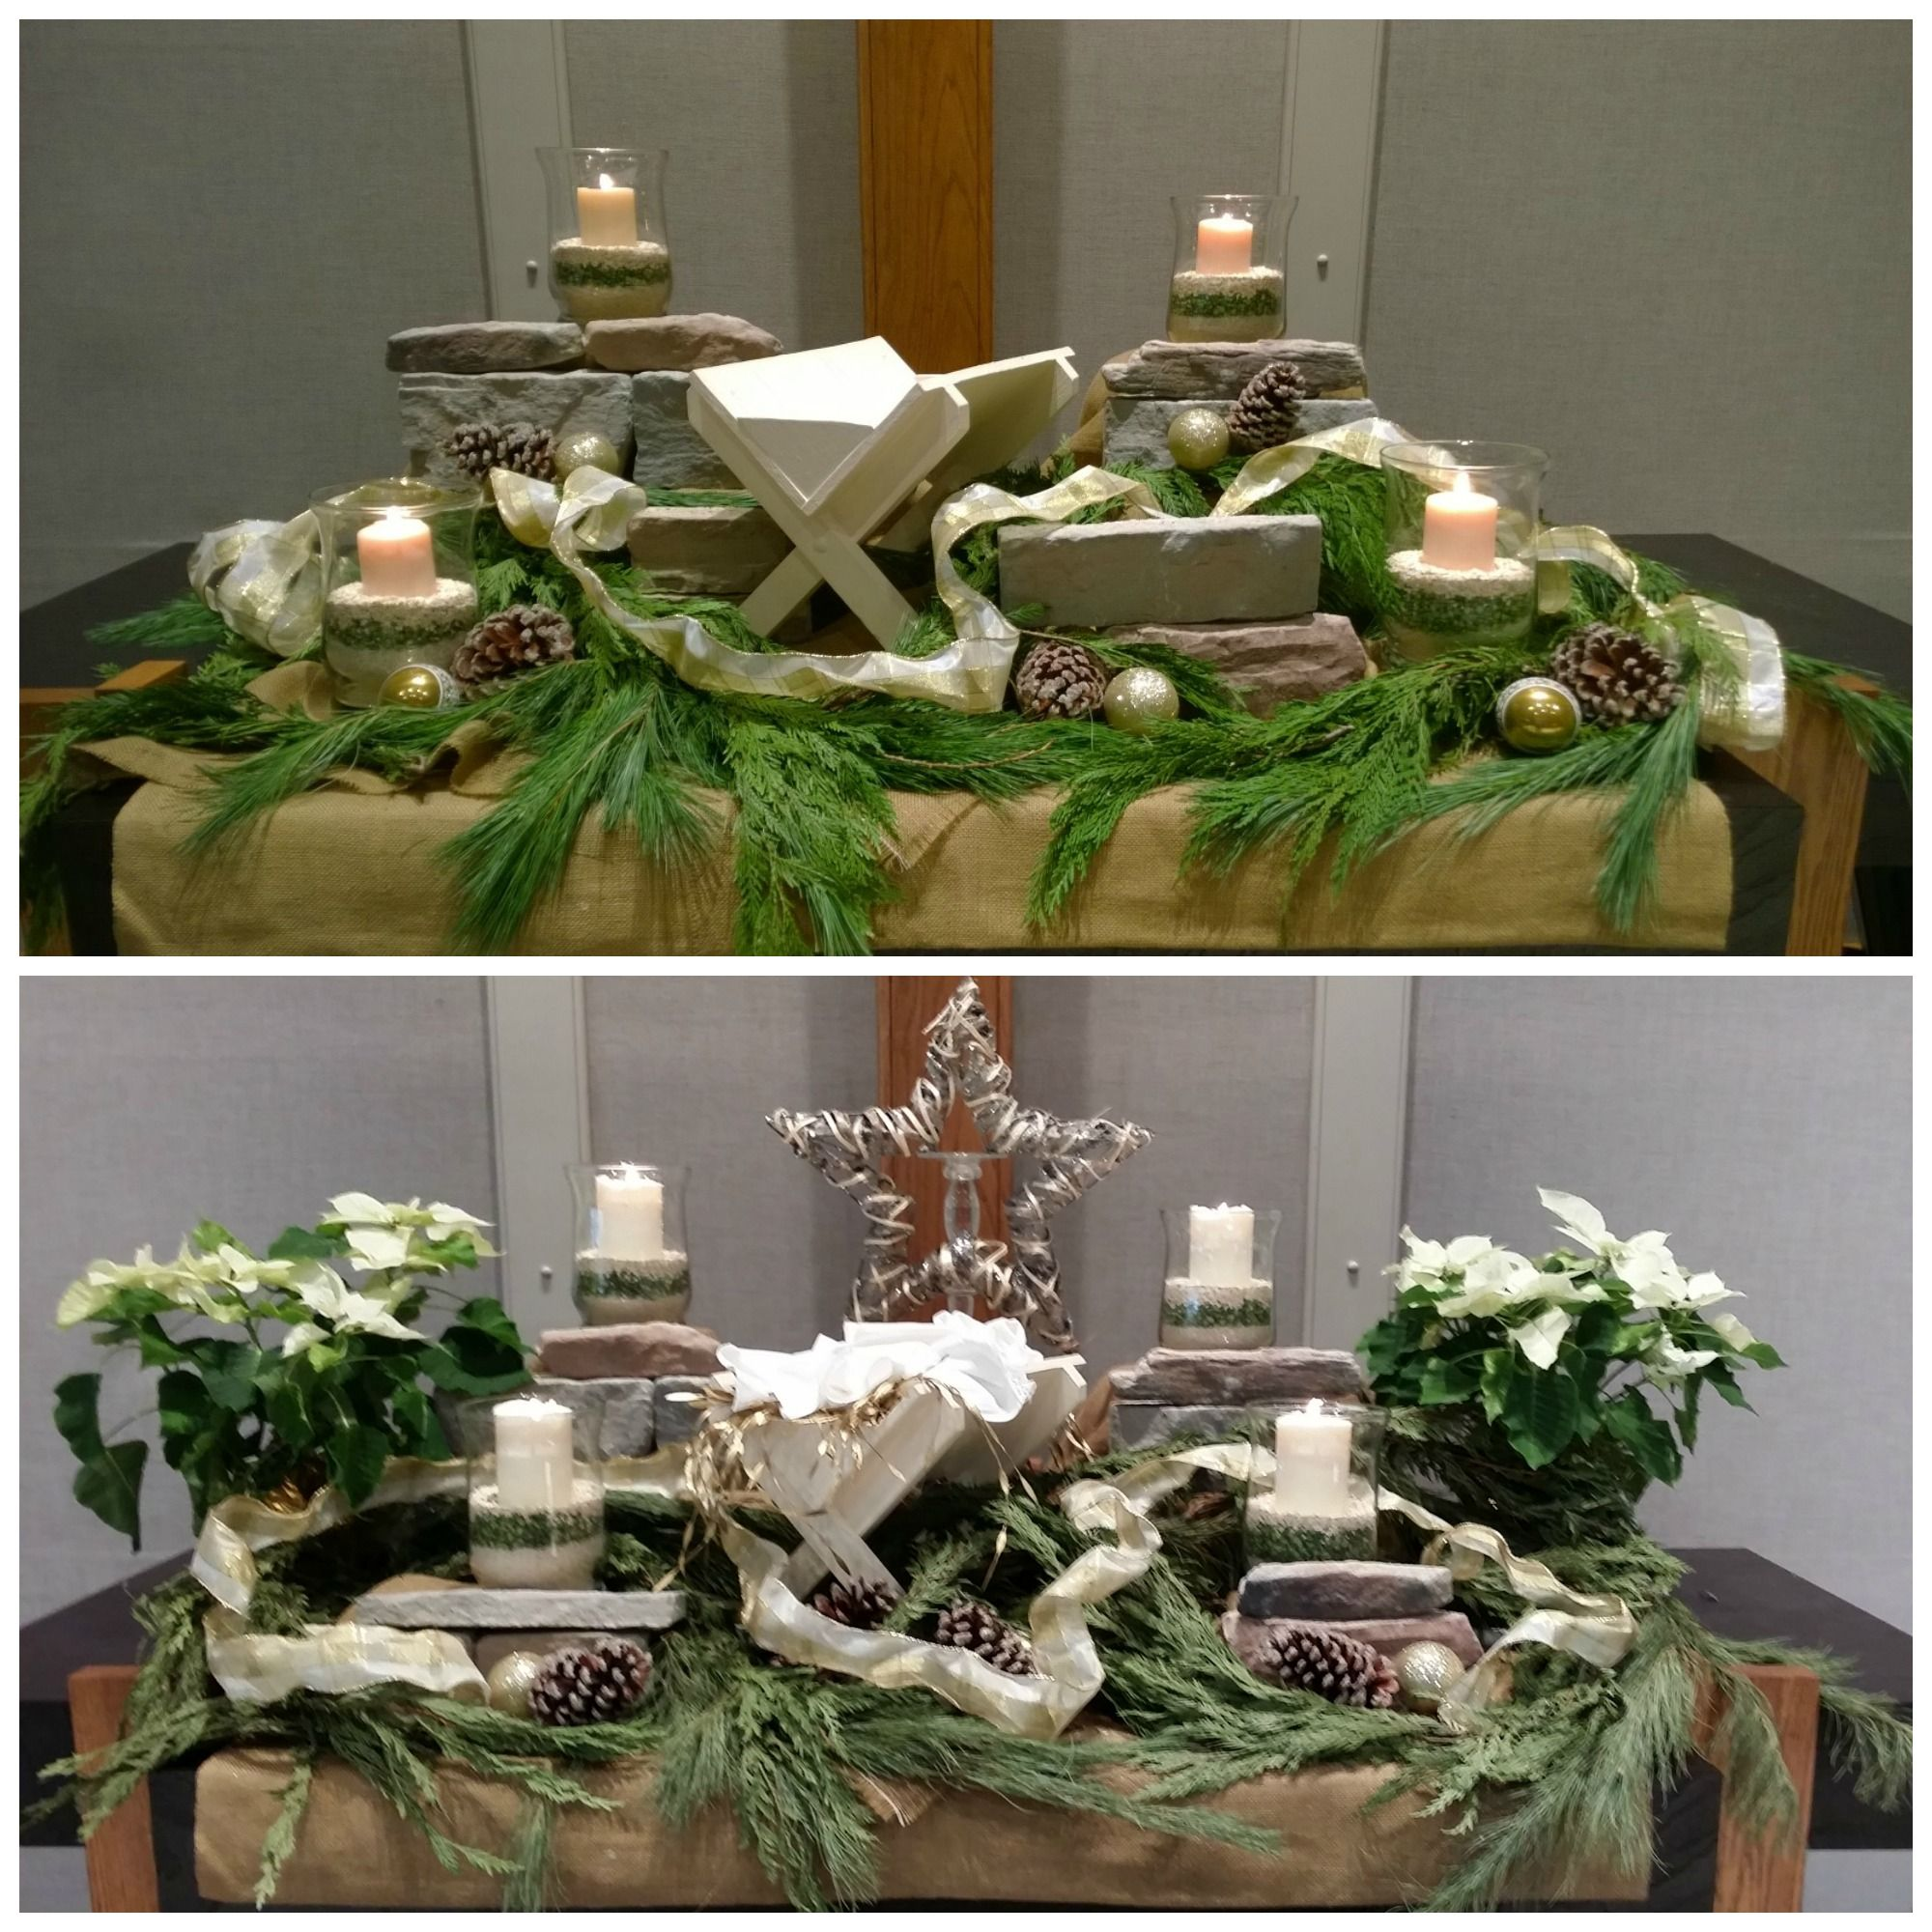 Natural Altar For December 2014. Top Photo Is Advent